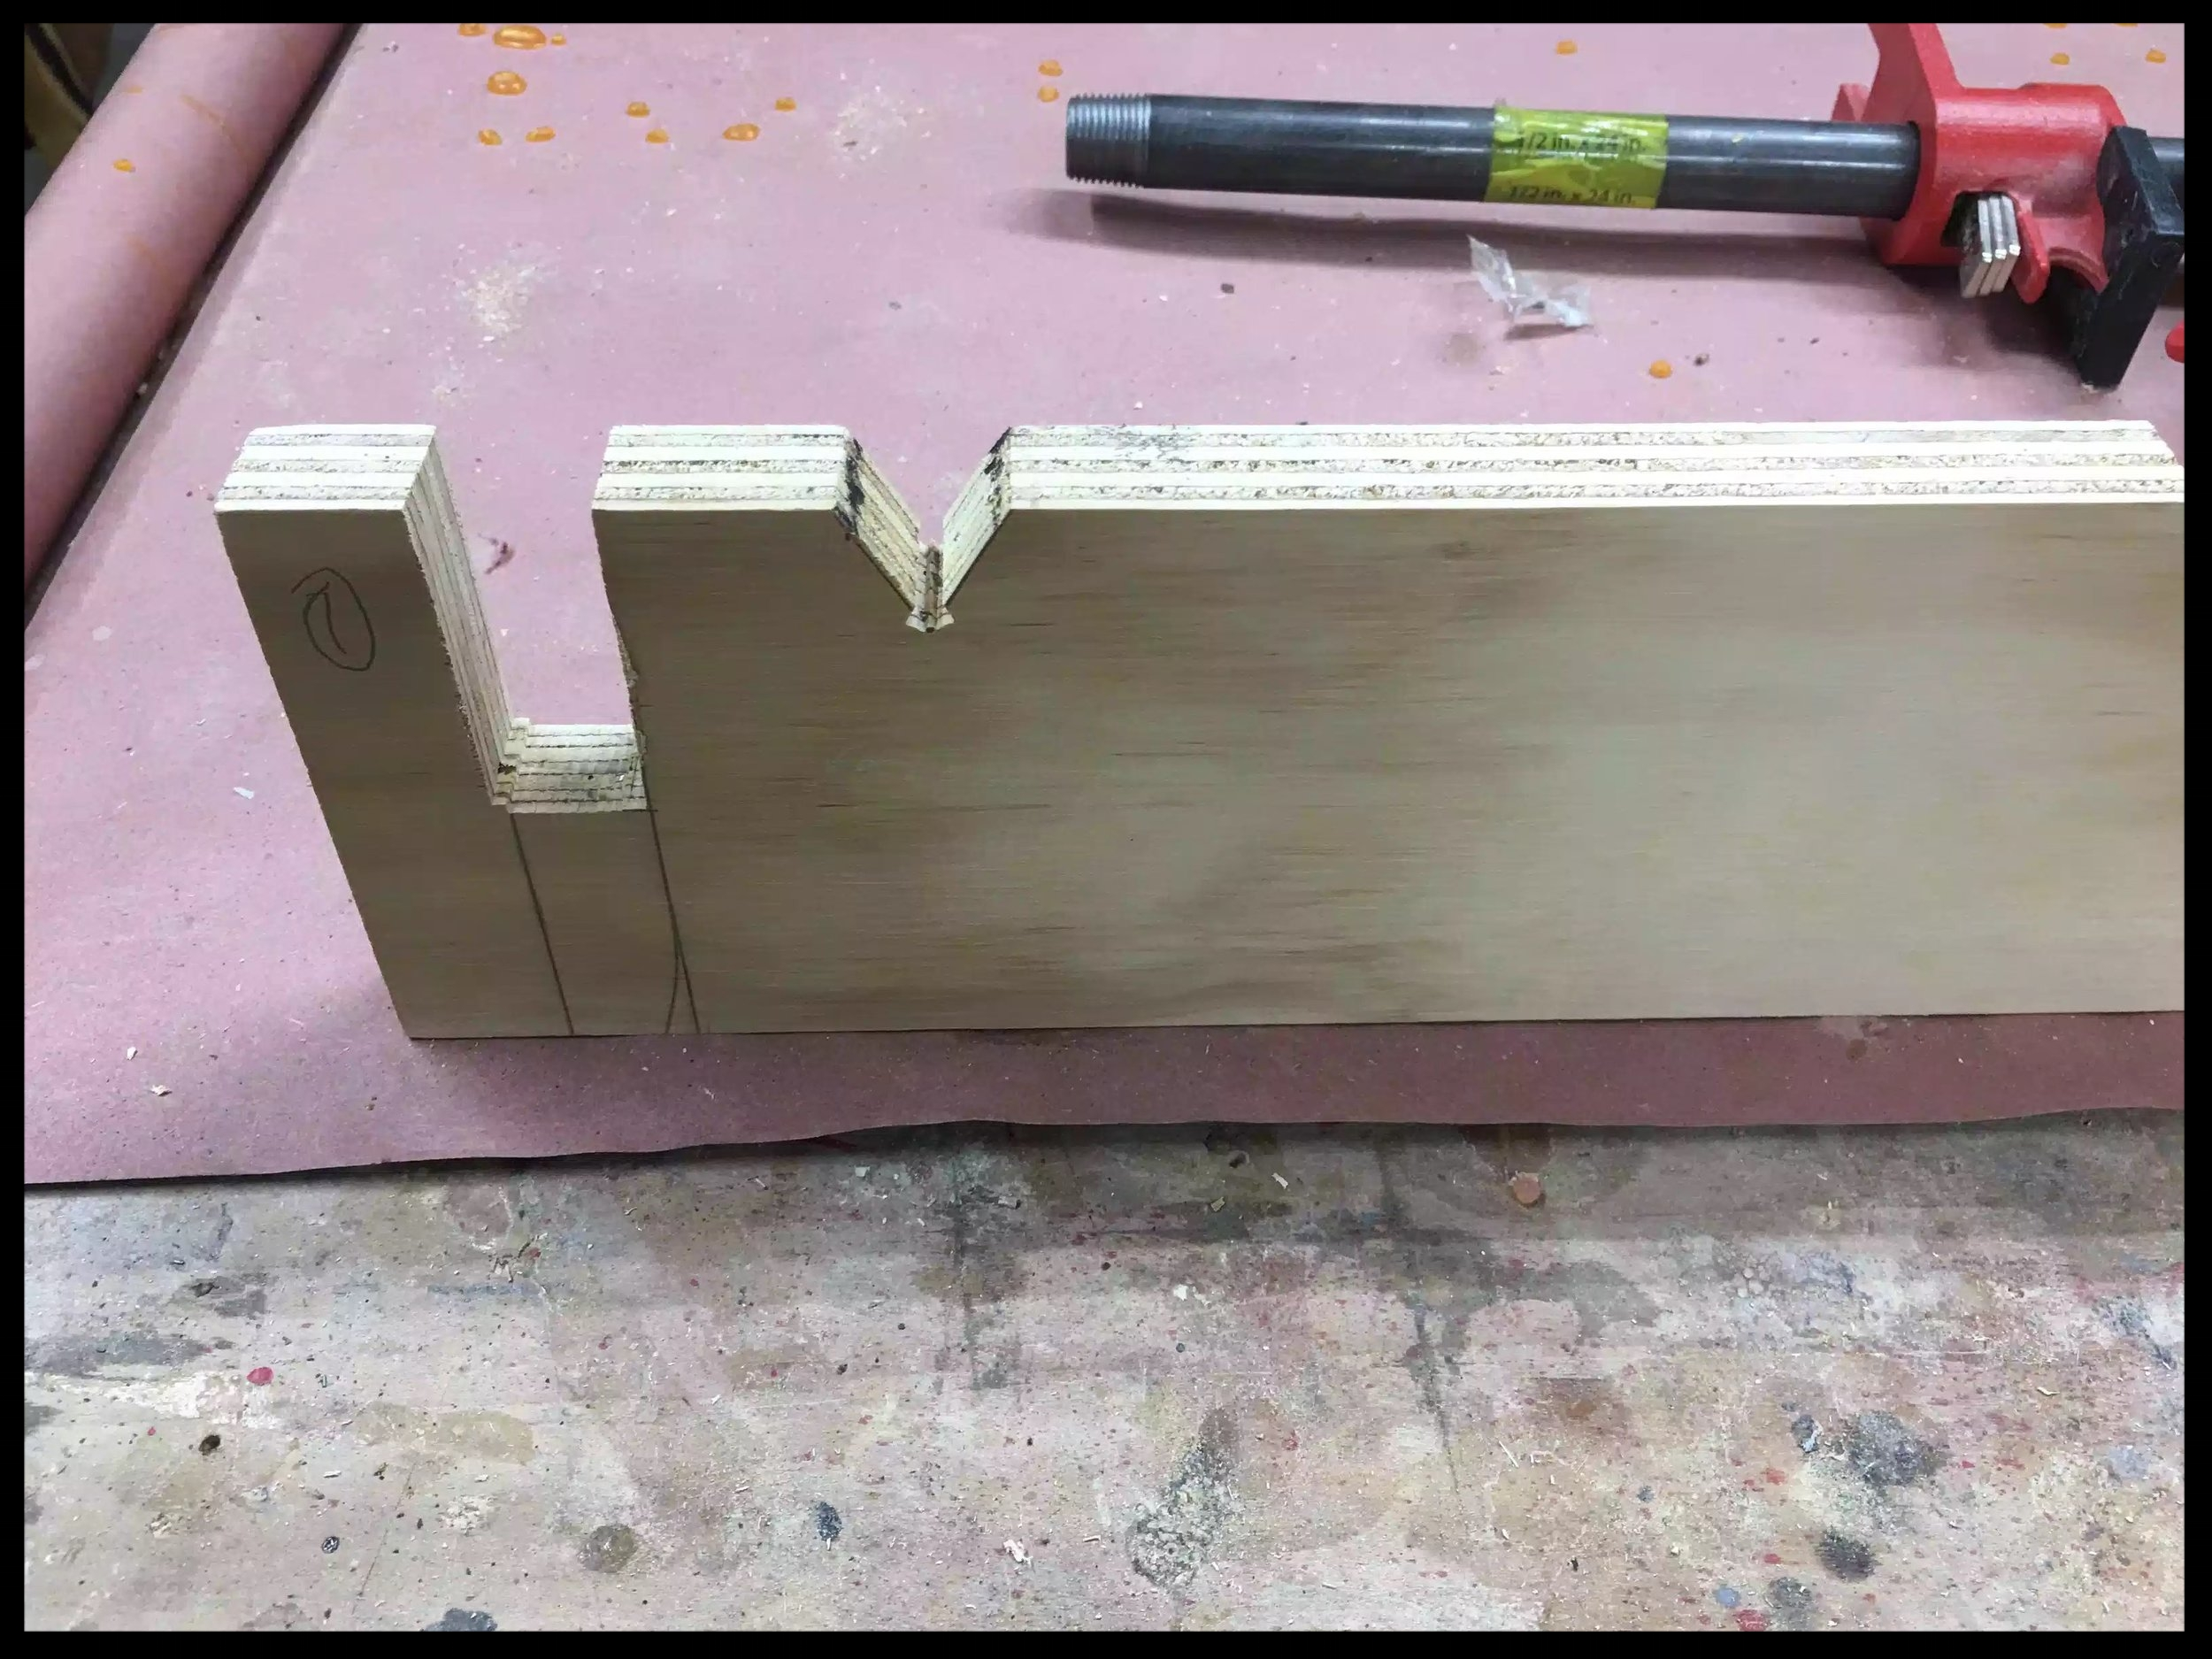 Here is a close-up of the half-lap on the front part of the jig, you can also see the V notched in